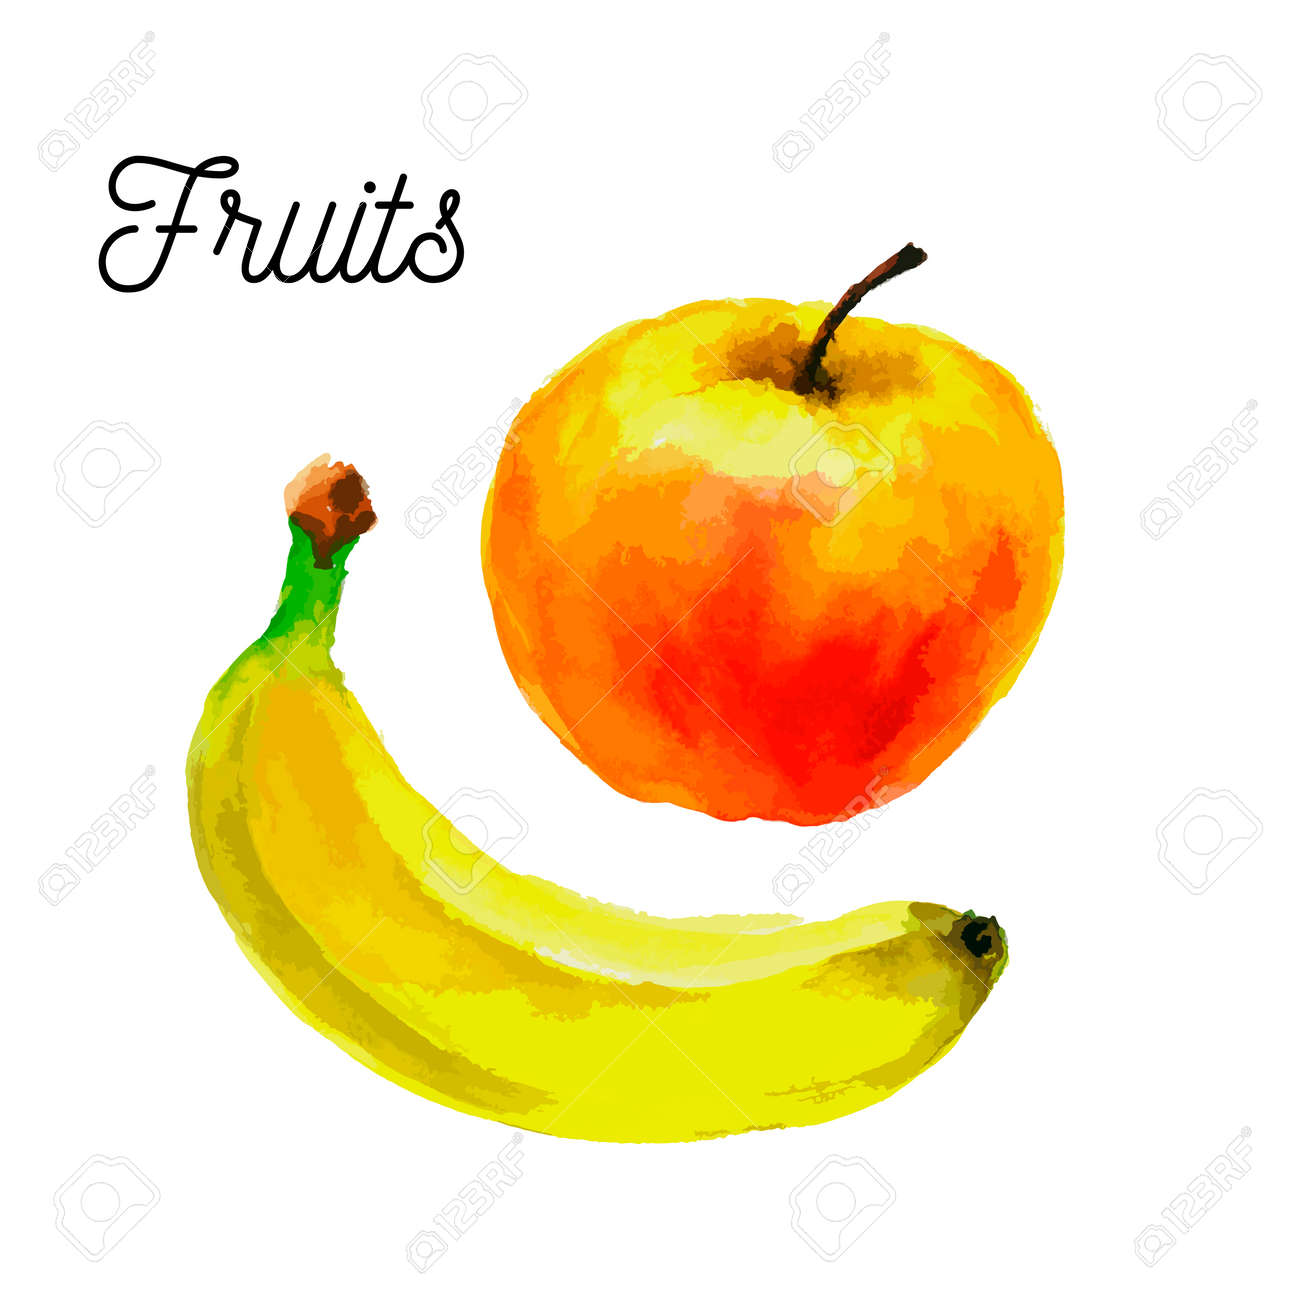 Red apple and yellow banana .fruit illustration isolated on a white background - 146773813